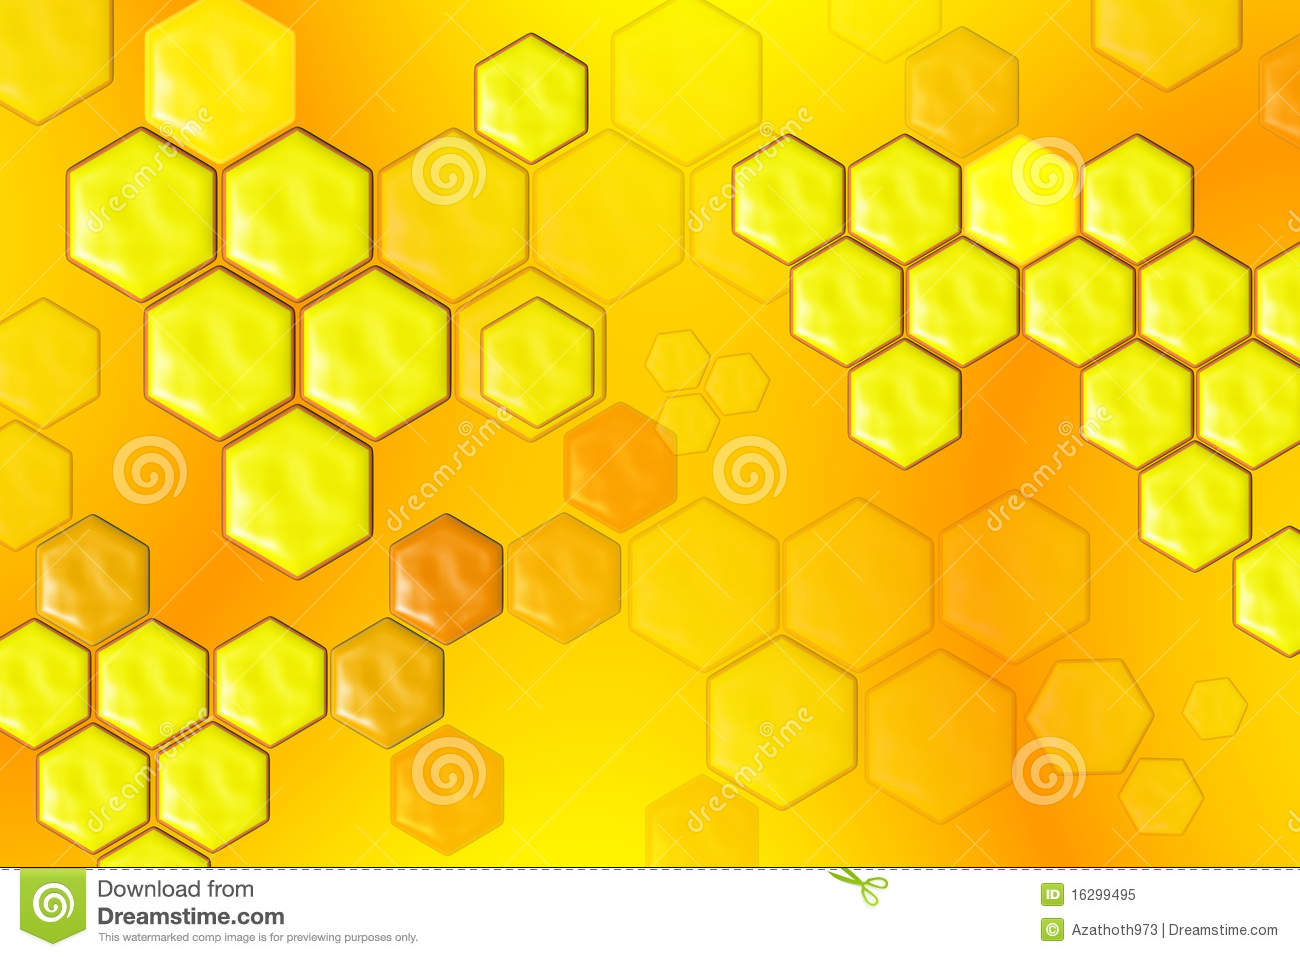 3d Tile Wallpaper Abstract Honeycomb Composition Royalty Free Stock Photo